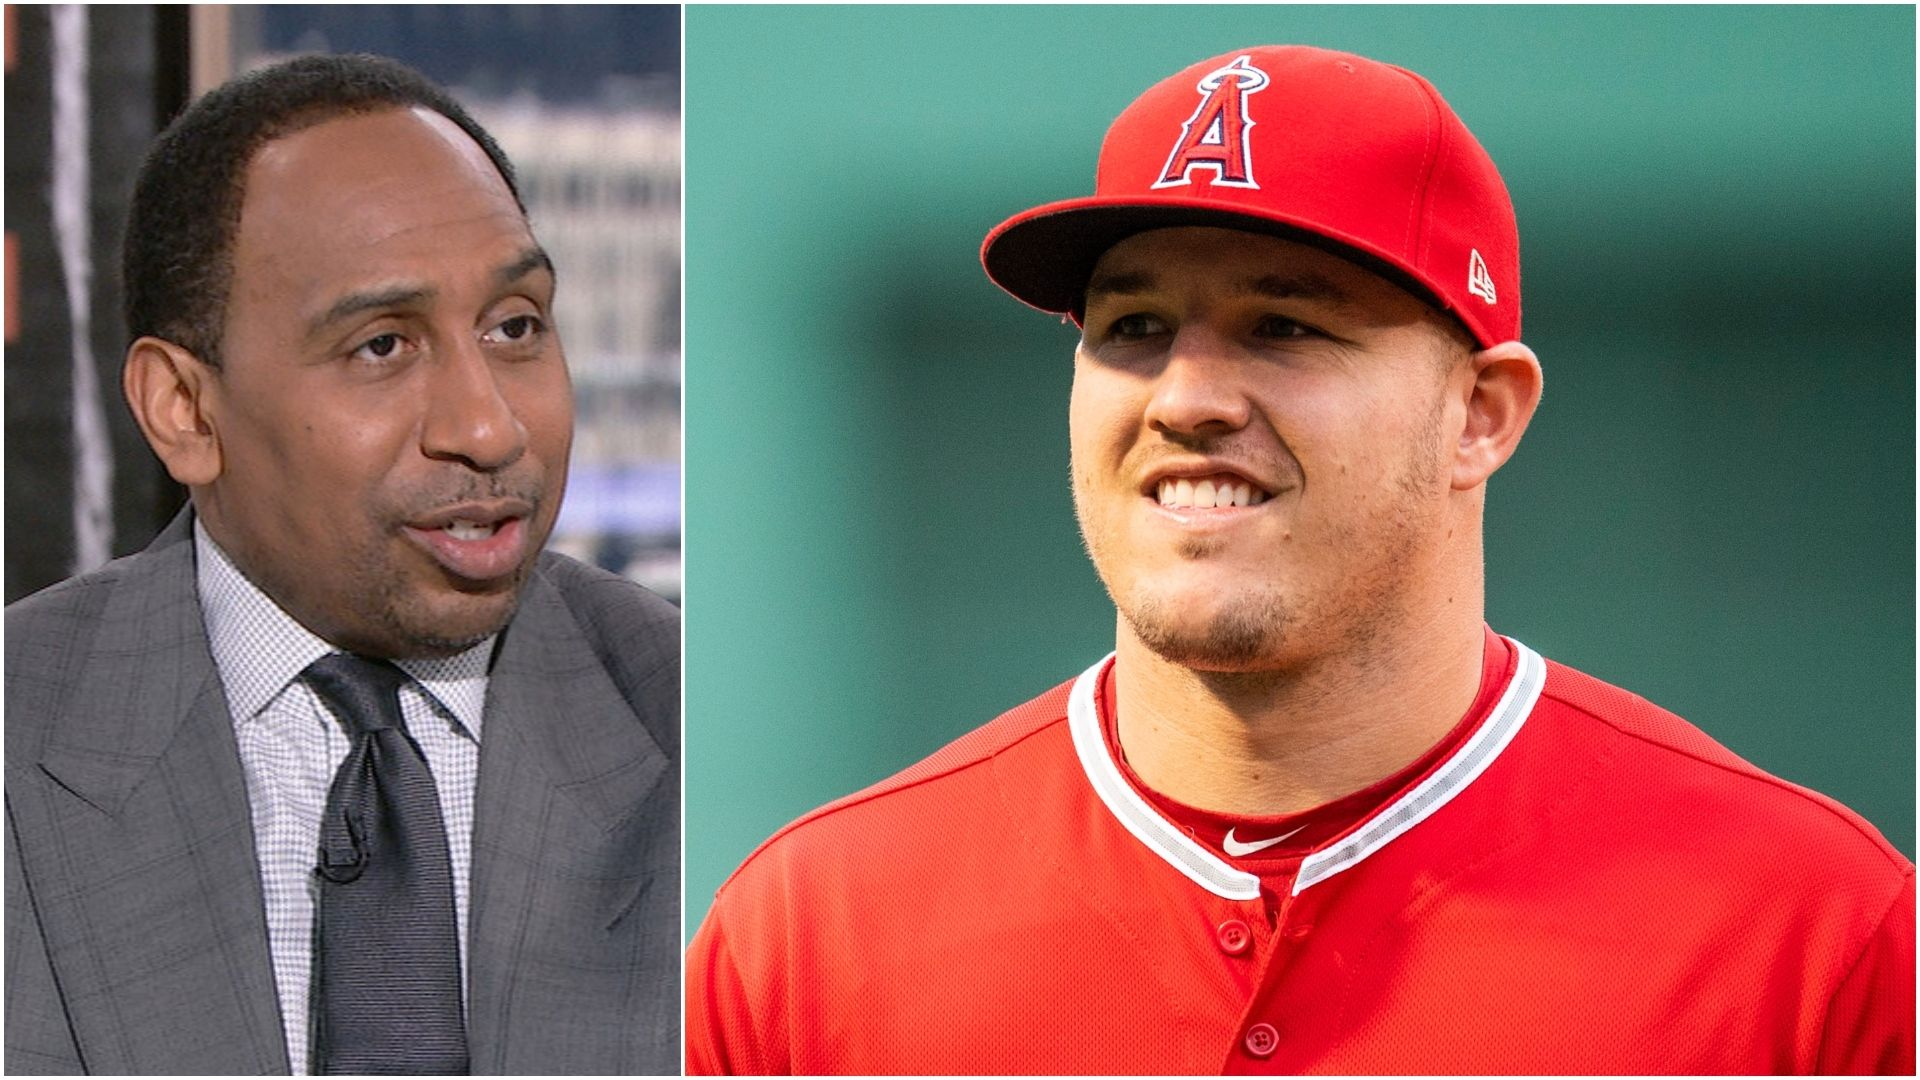 Trout elated to stay an Angel 'for years to come'